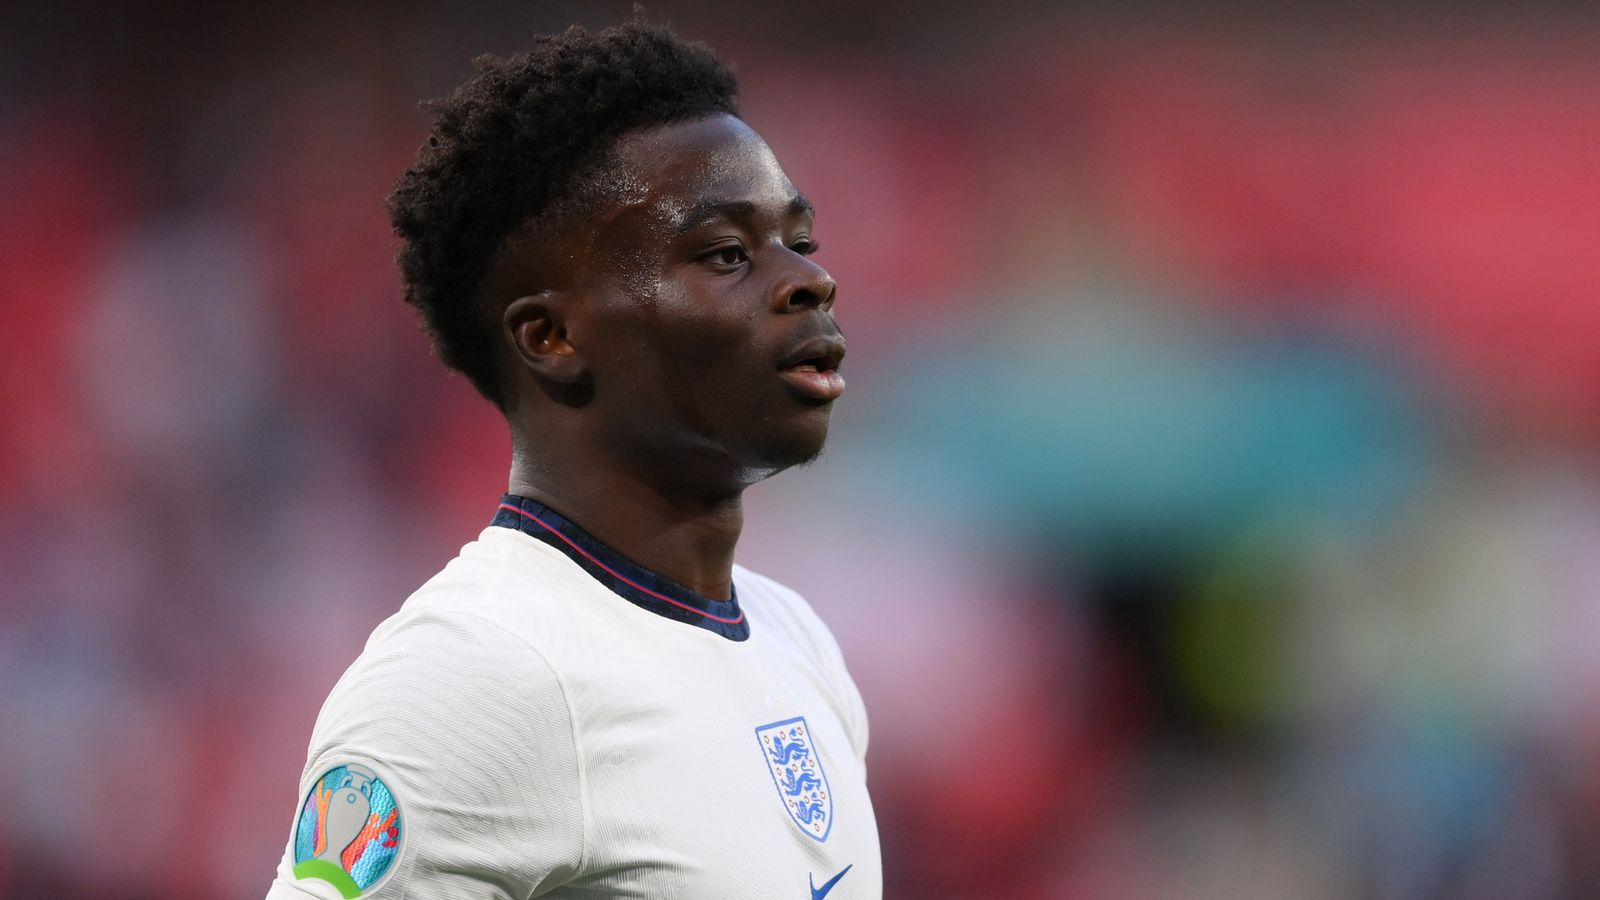 Bukayo Saka: England star says 'I will not let the negativity break me' after racist abuse